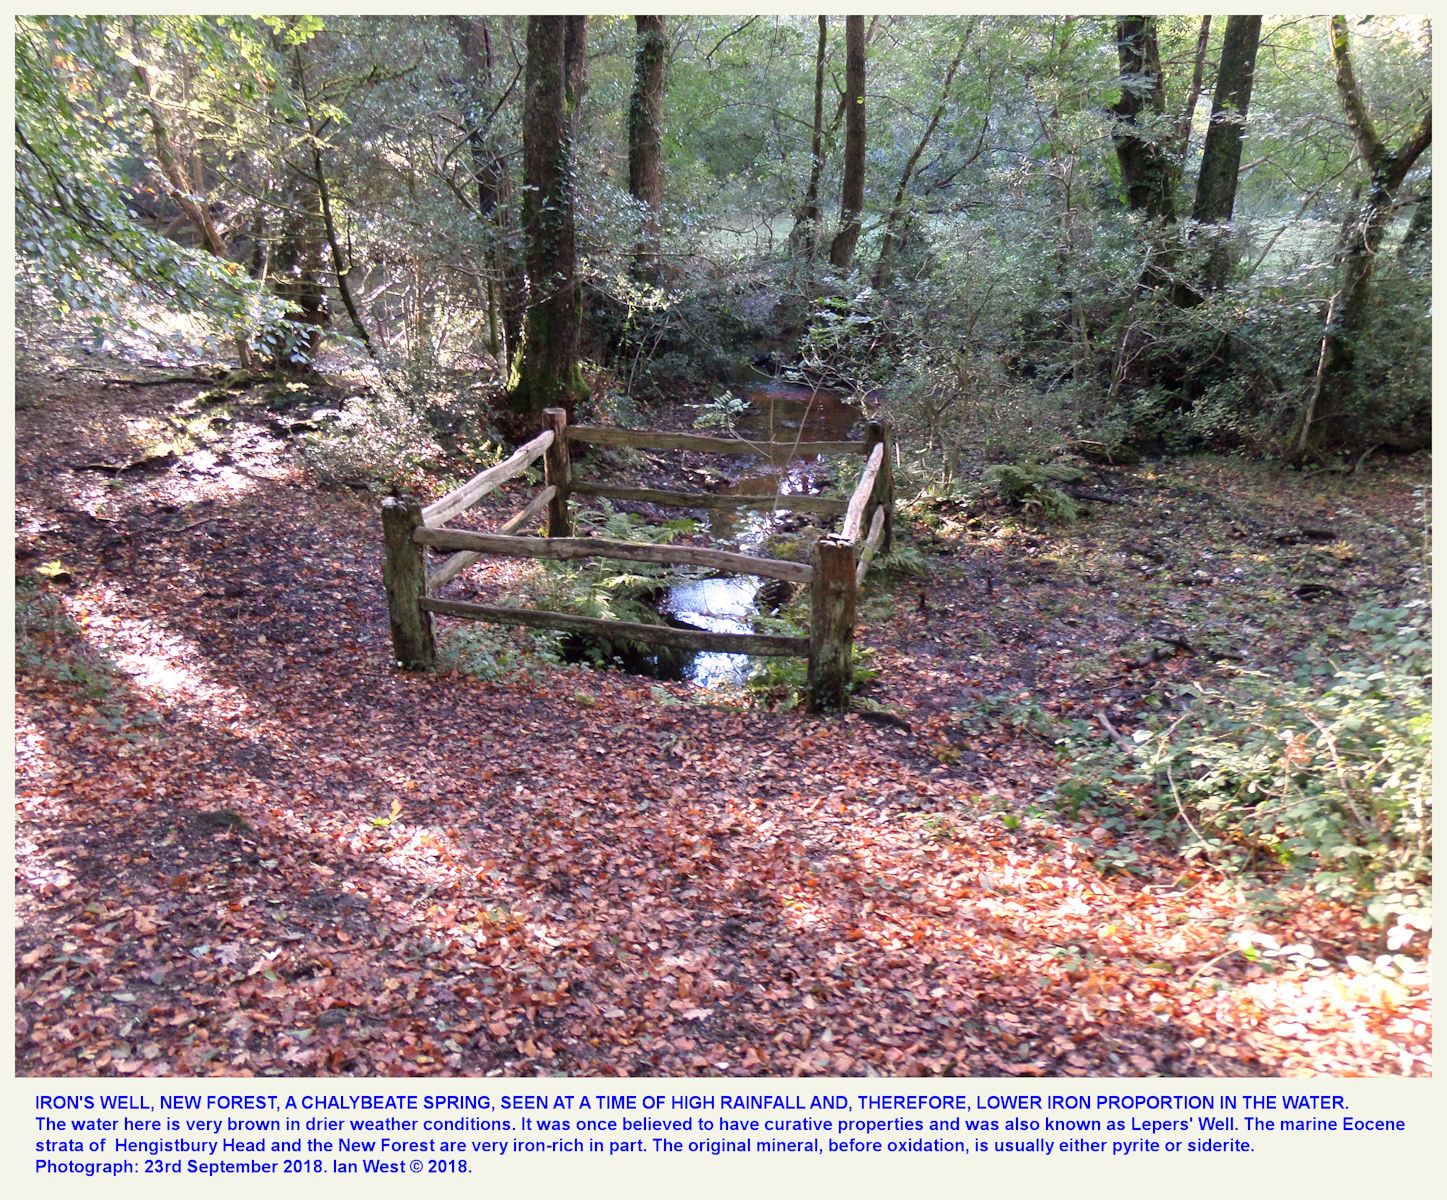 Iron's Well, near Fritham, New Forest, Hampshire, as seen after heavy rain and when the iron content of the water was low, 23rd September 2018